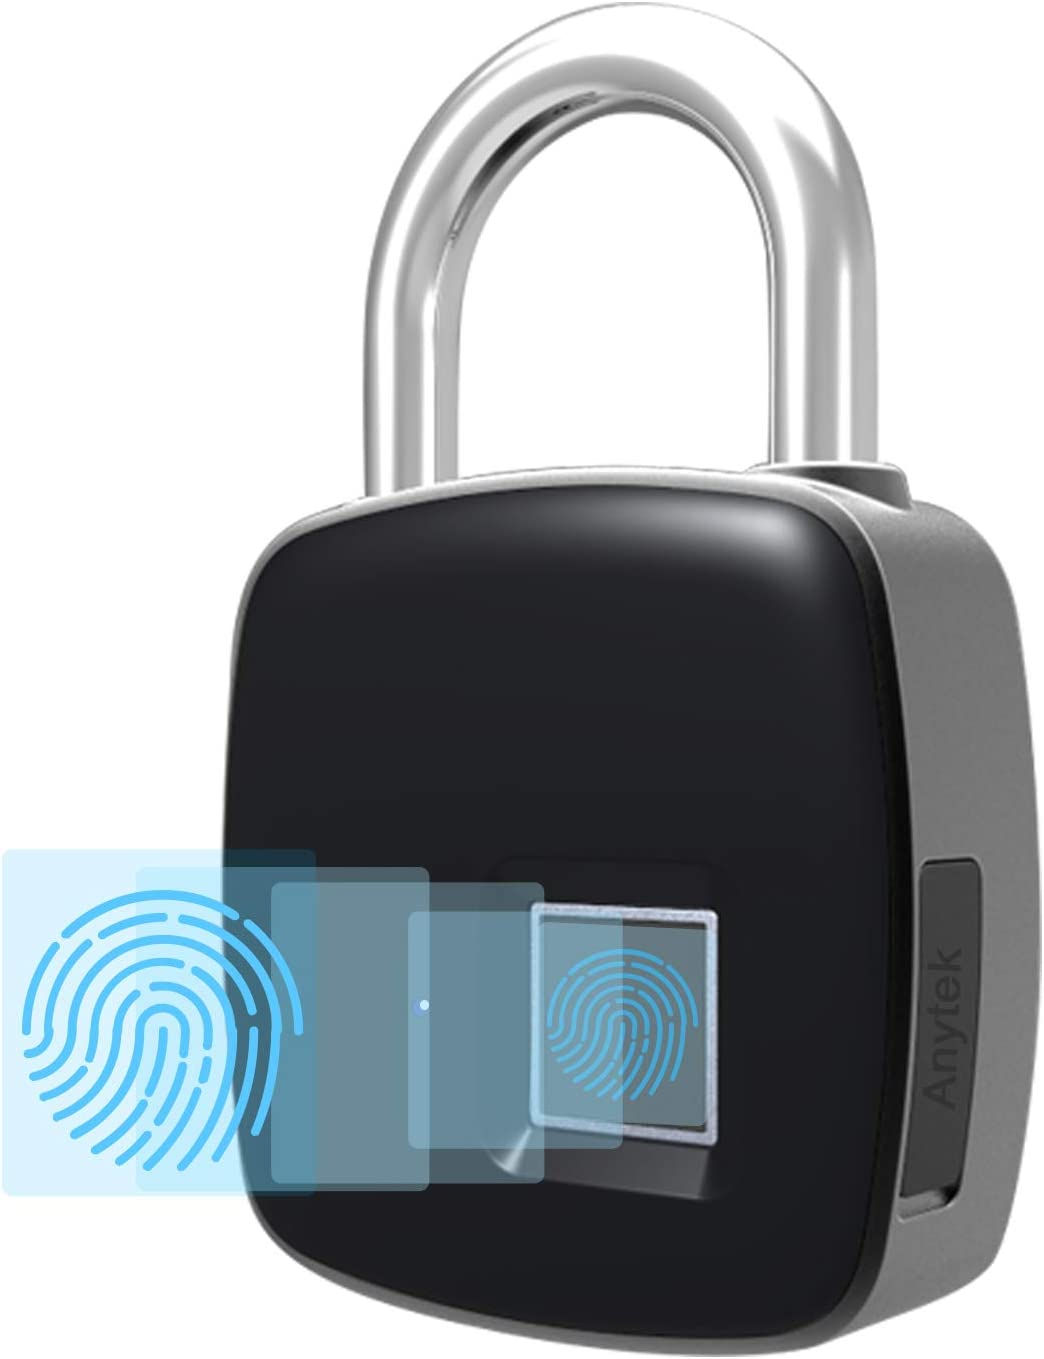 Smart Fingerprint Padlock Small Size Padlock Cabinet Fingerprint Lock O5W3